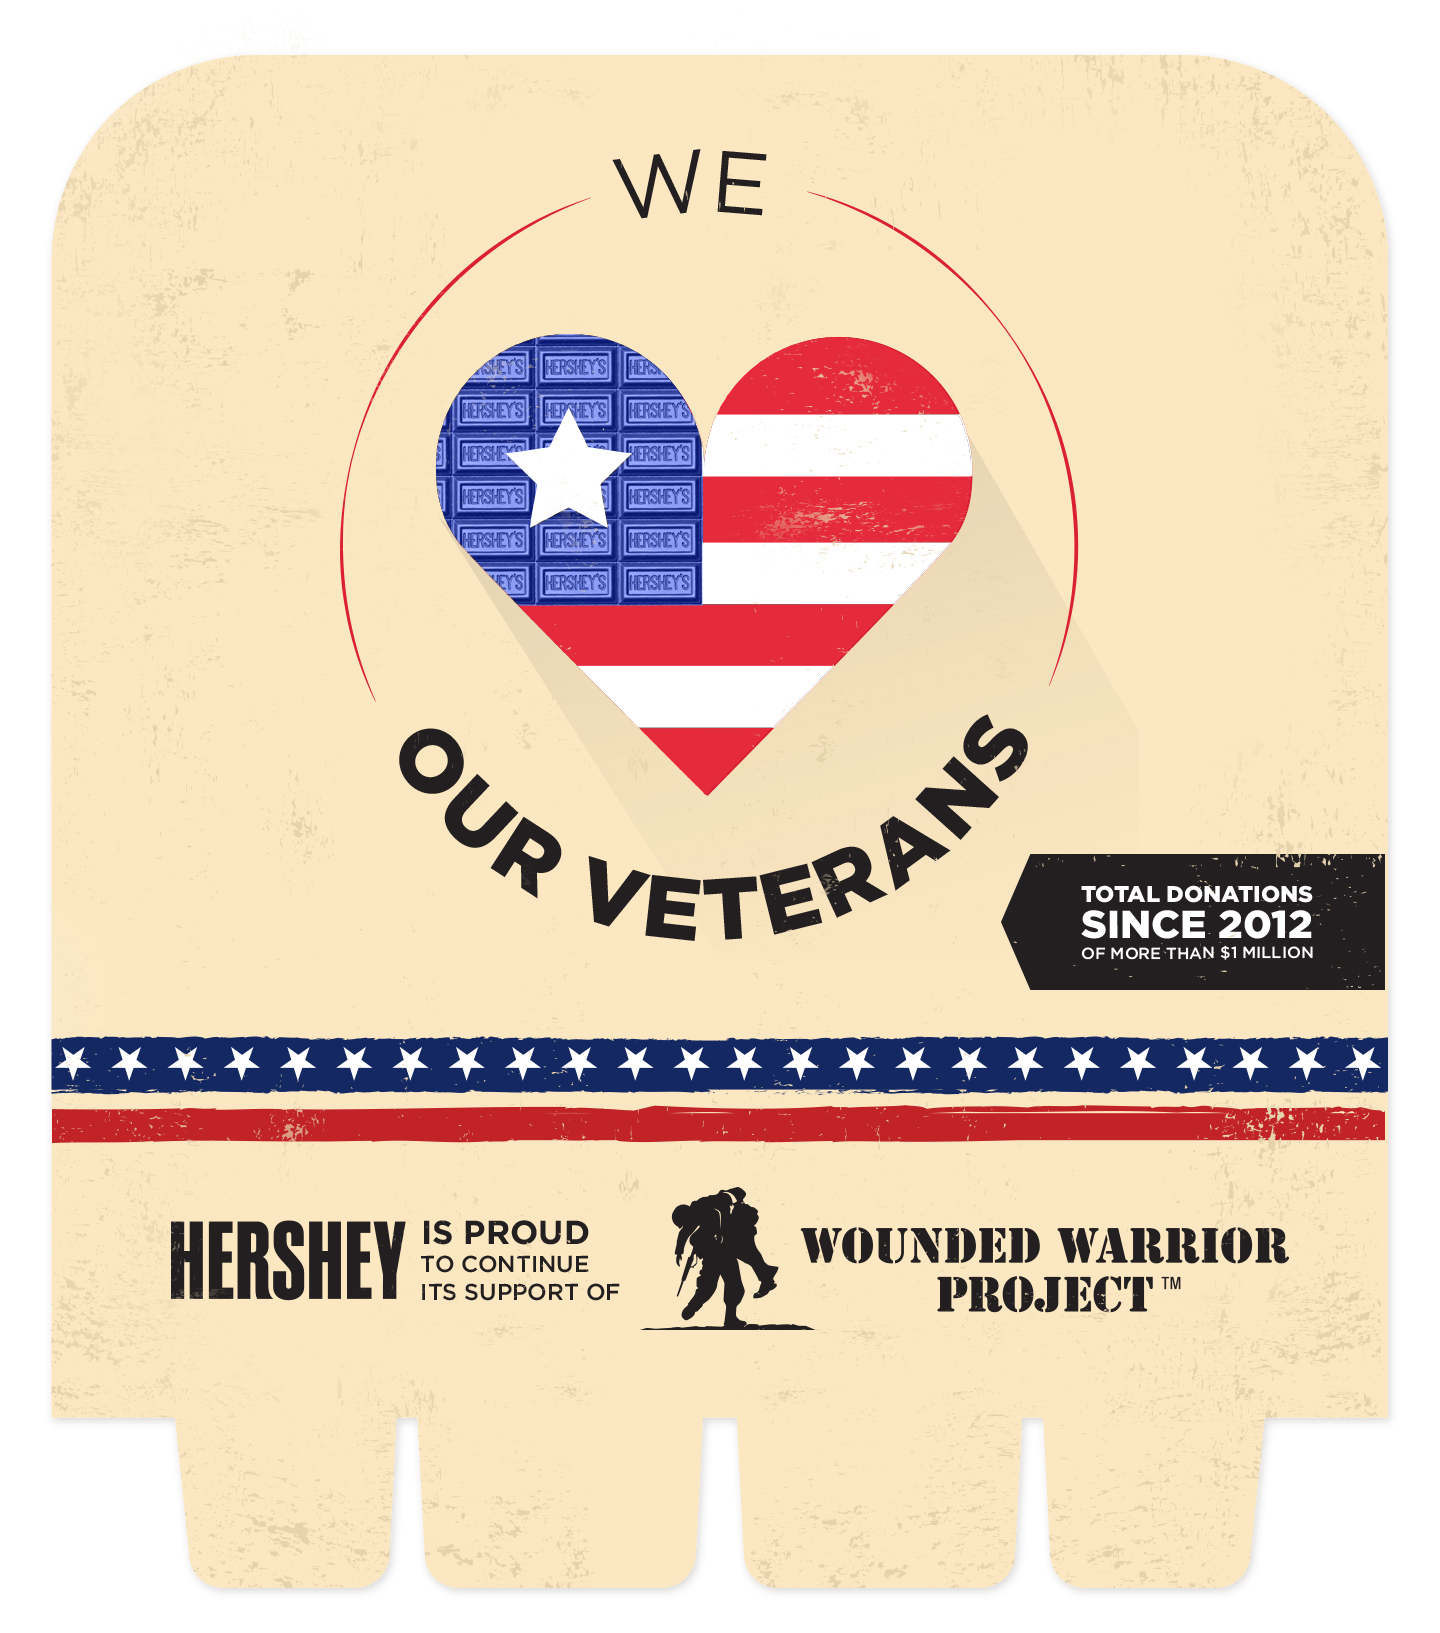 Concept for Hershey's and Wounded Warrior Project. This concept was selected and produced.